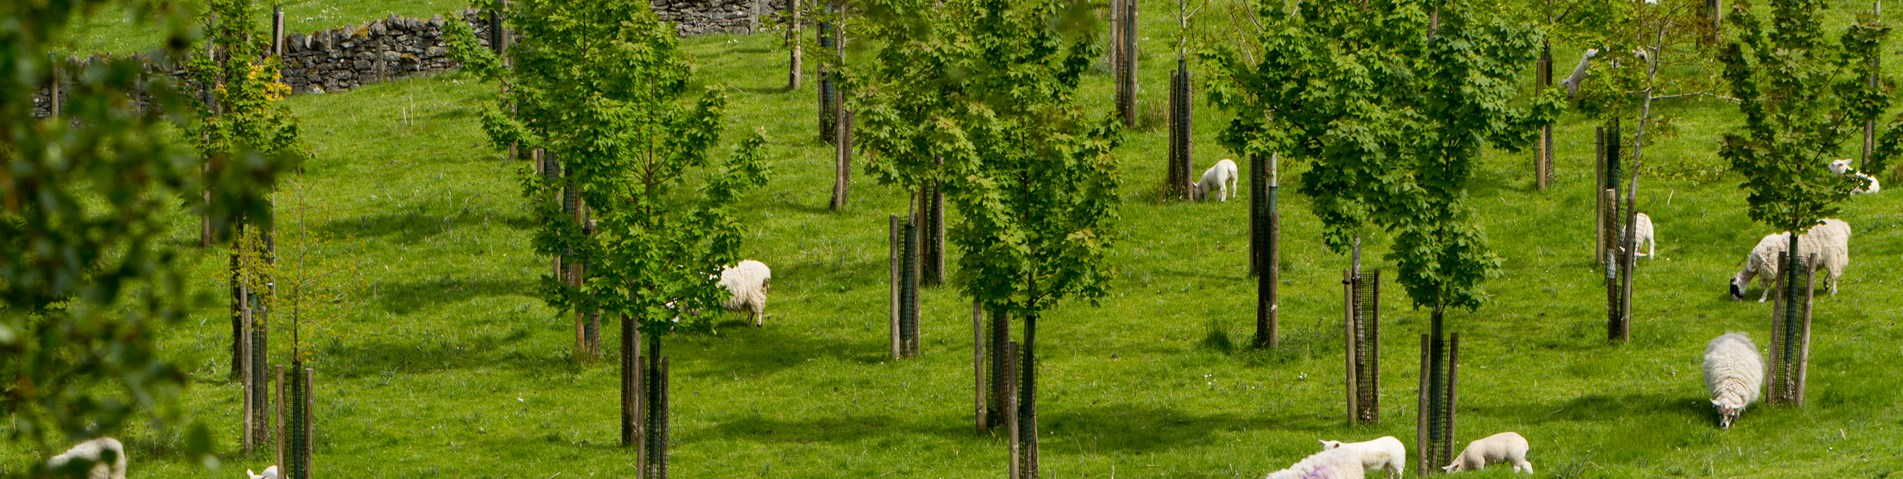 Agroforestry sheep trees Bolfracks Estate Aberfeldy Scotland - Credit Matthias Kremer.jpg